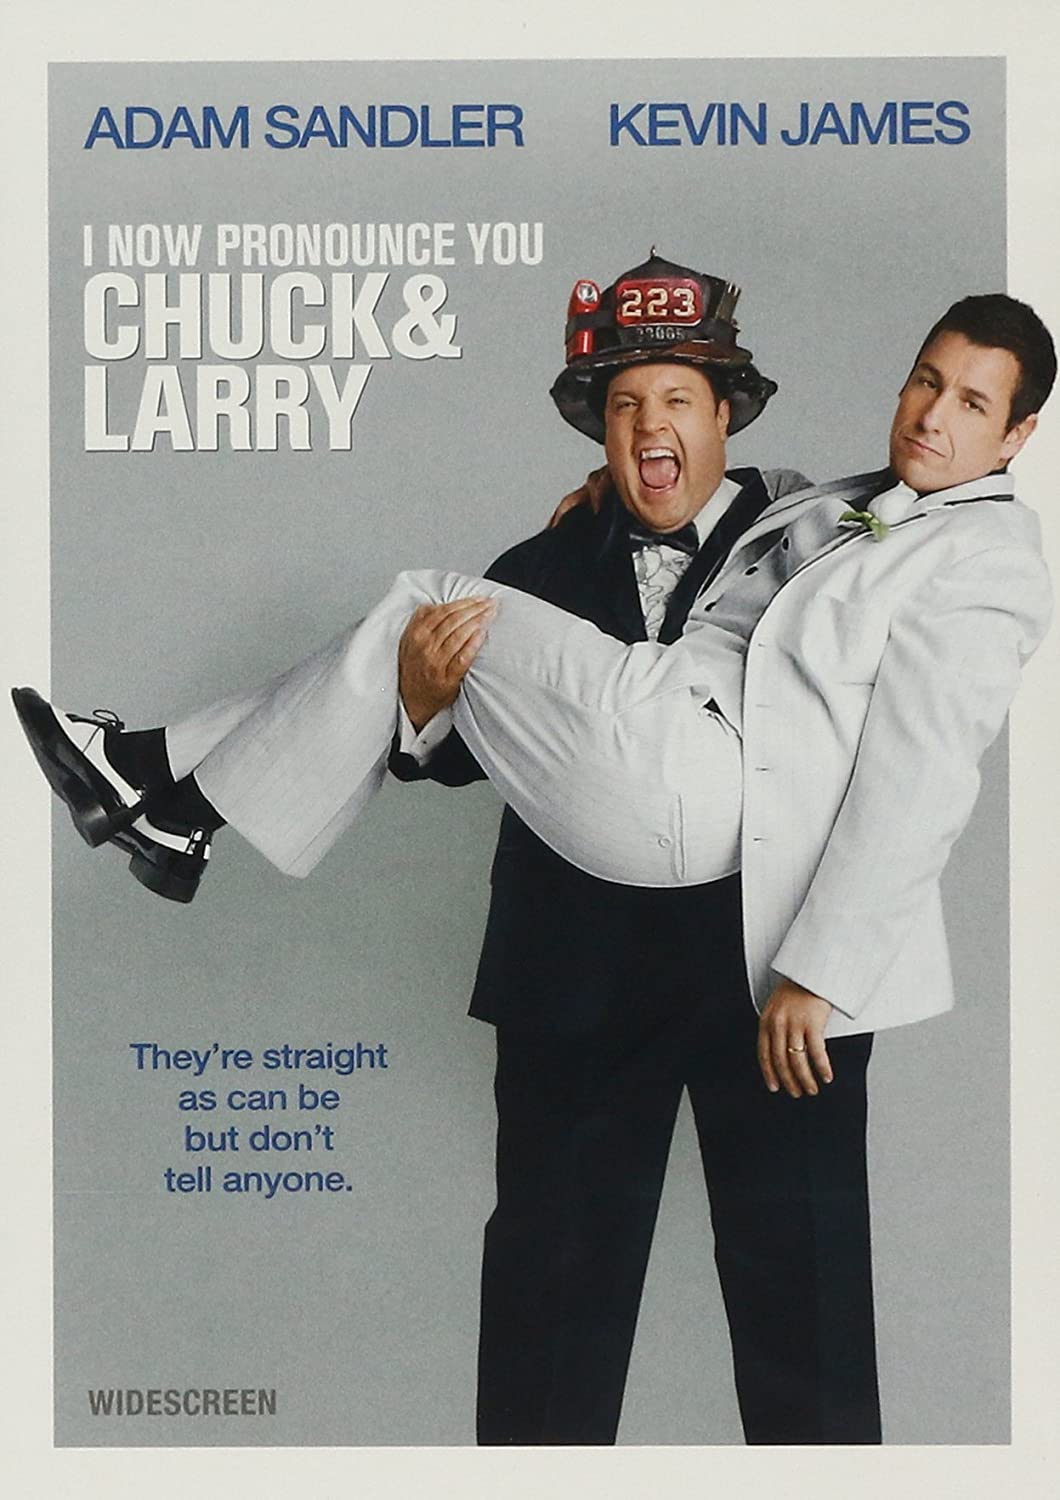 On the set, the actors Chuck and Larry: fire wedding did not work